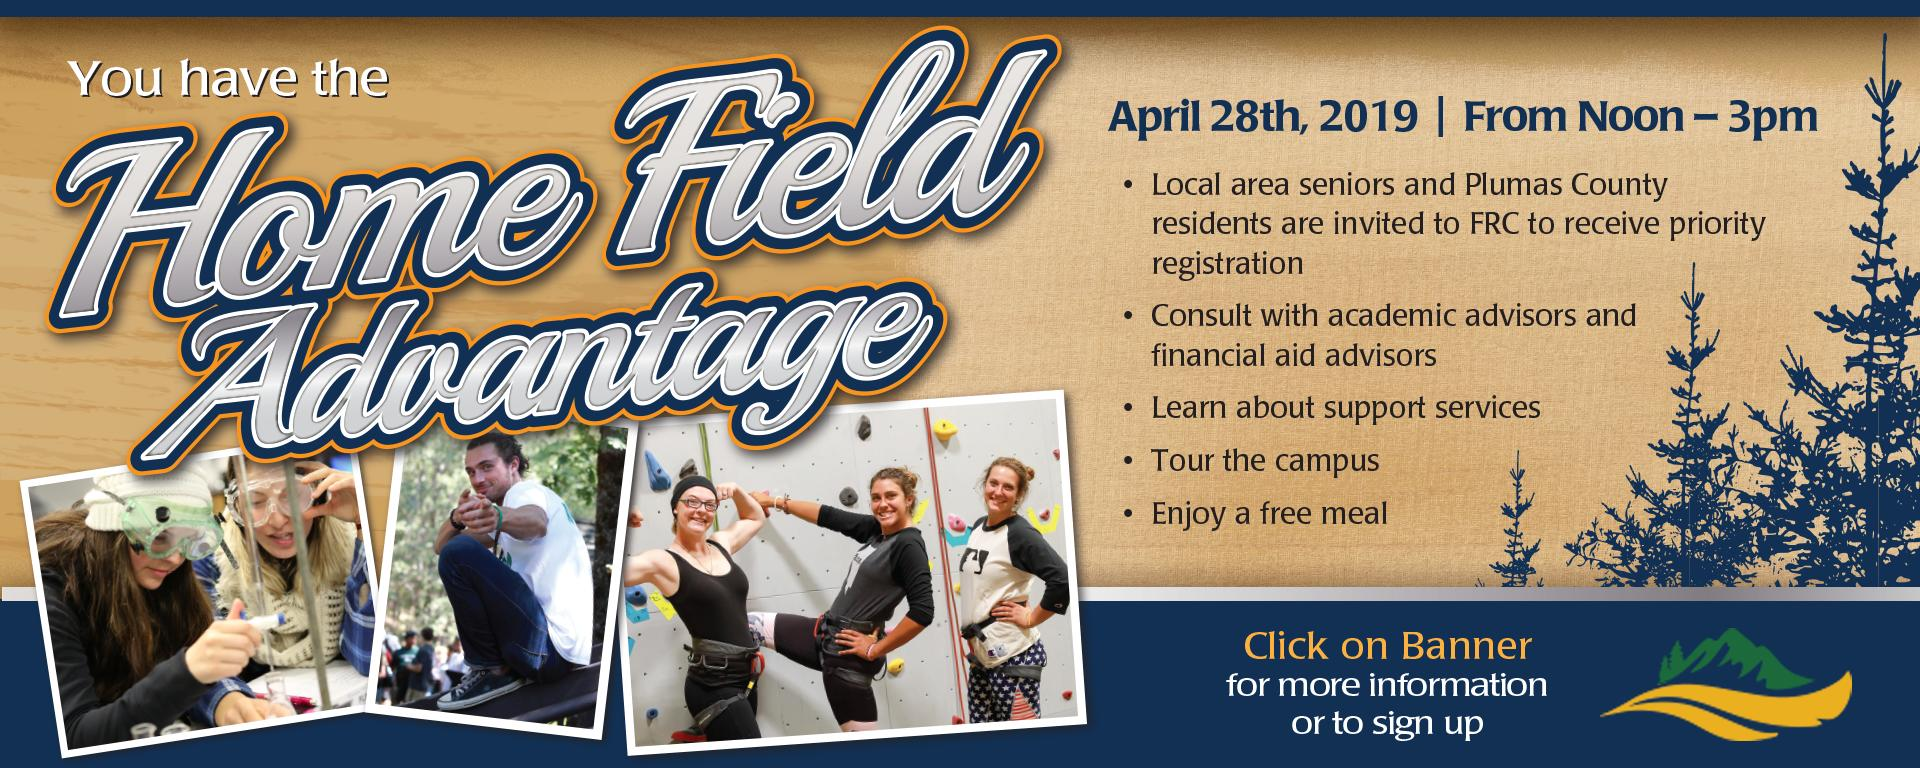 Home Field Advantage April 28th 2019, 12-3pm. Local area seniors and Plumas county residents can received priority registration. Click for more information.